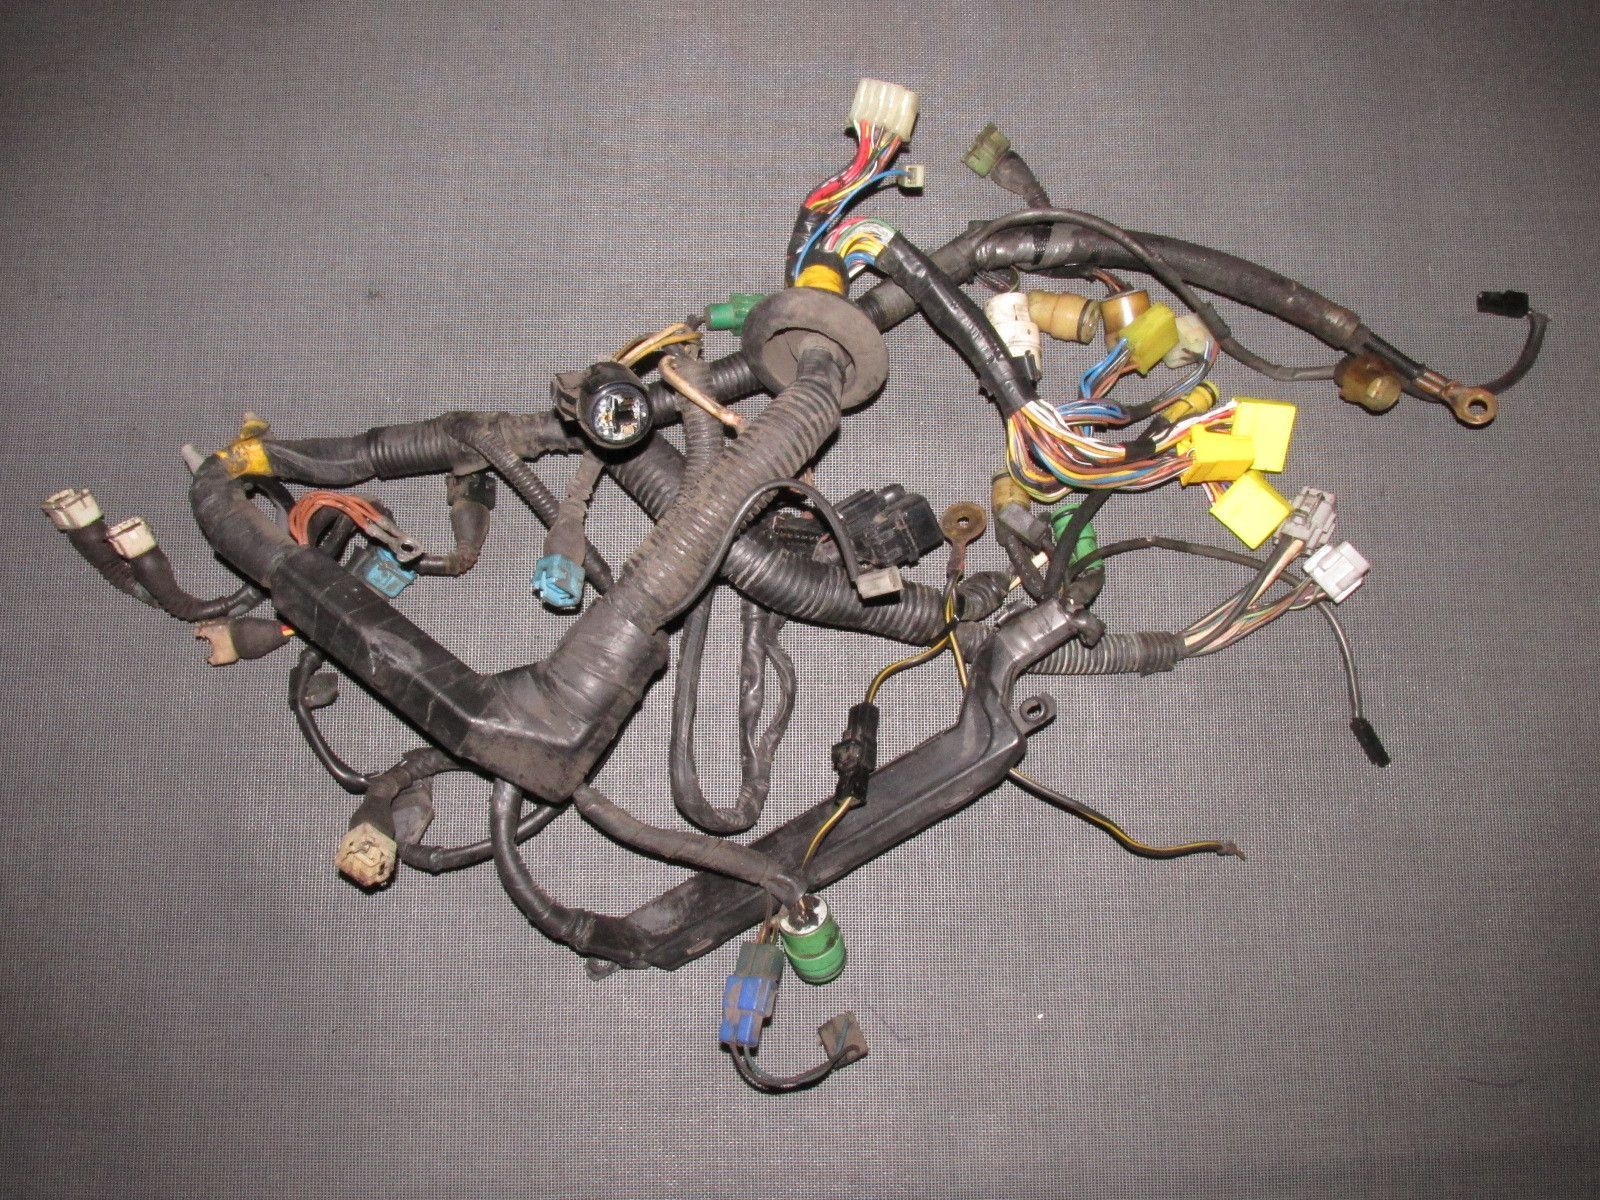 medium resolution of 85 86 87 88 89 toyota mr2 oem 4age engine wiring harness cars wiring harness components